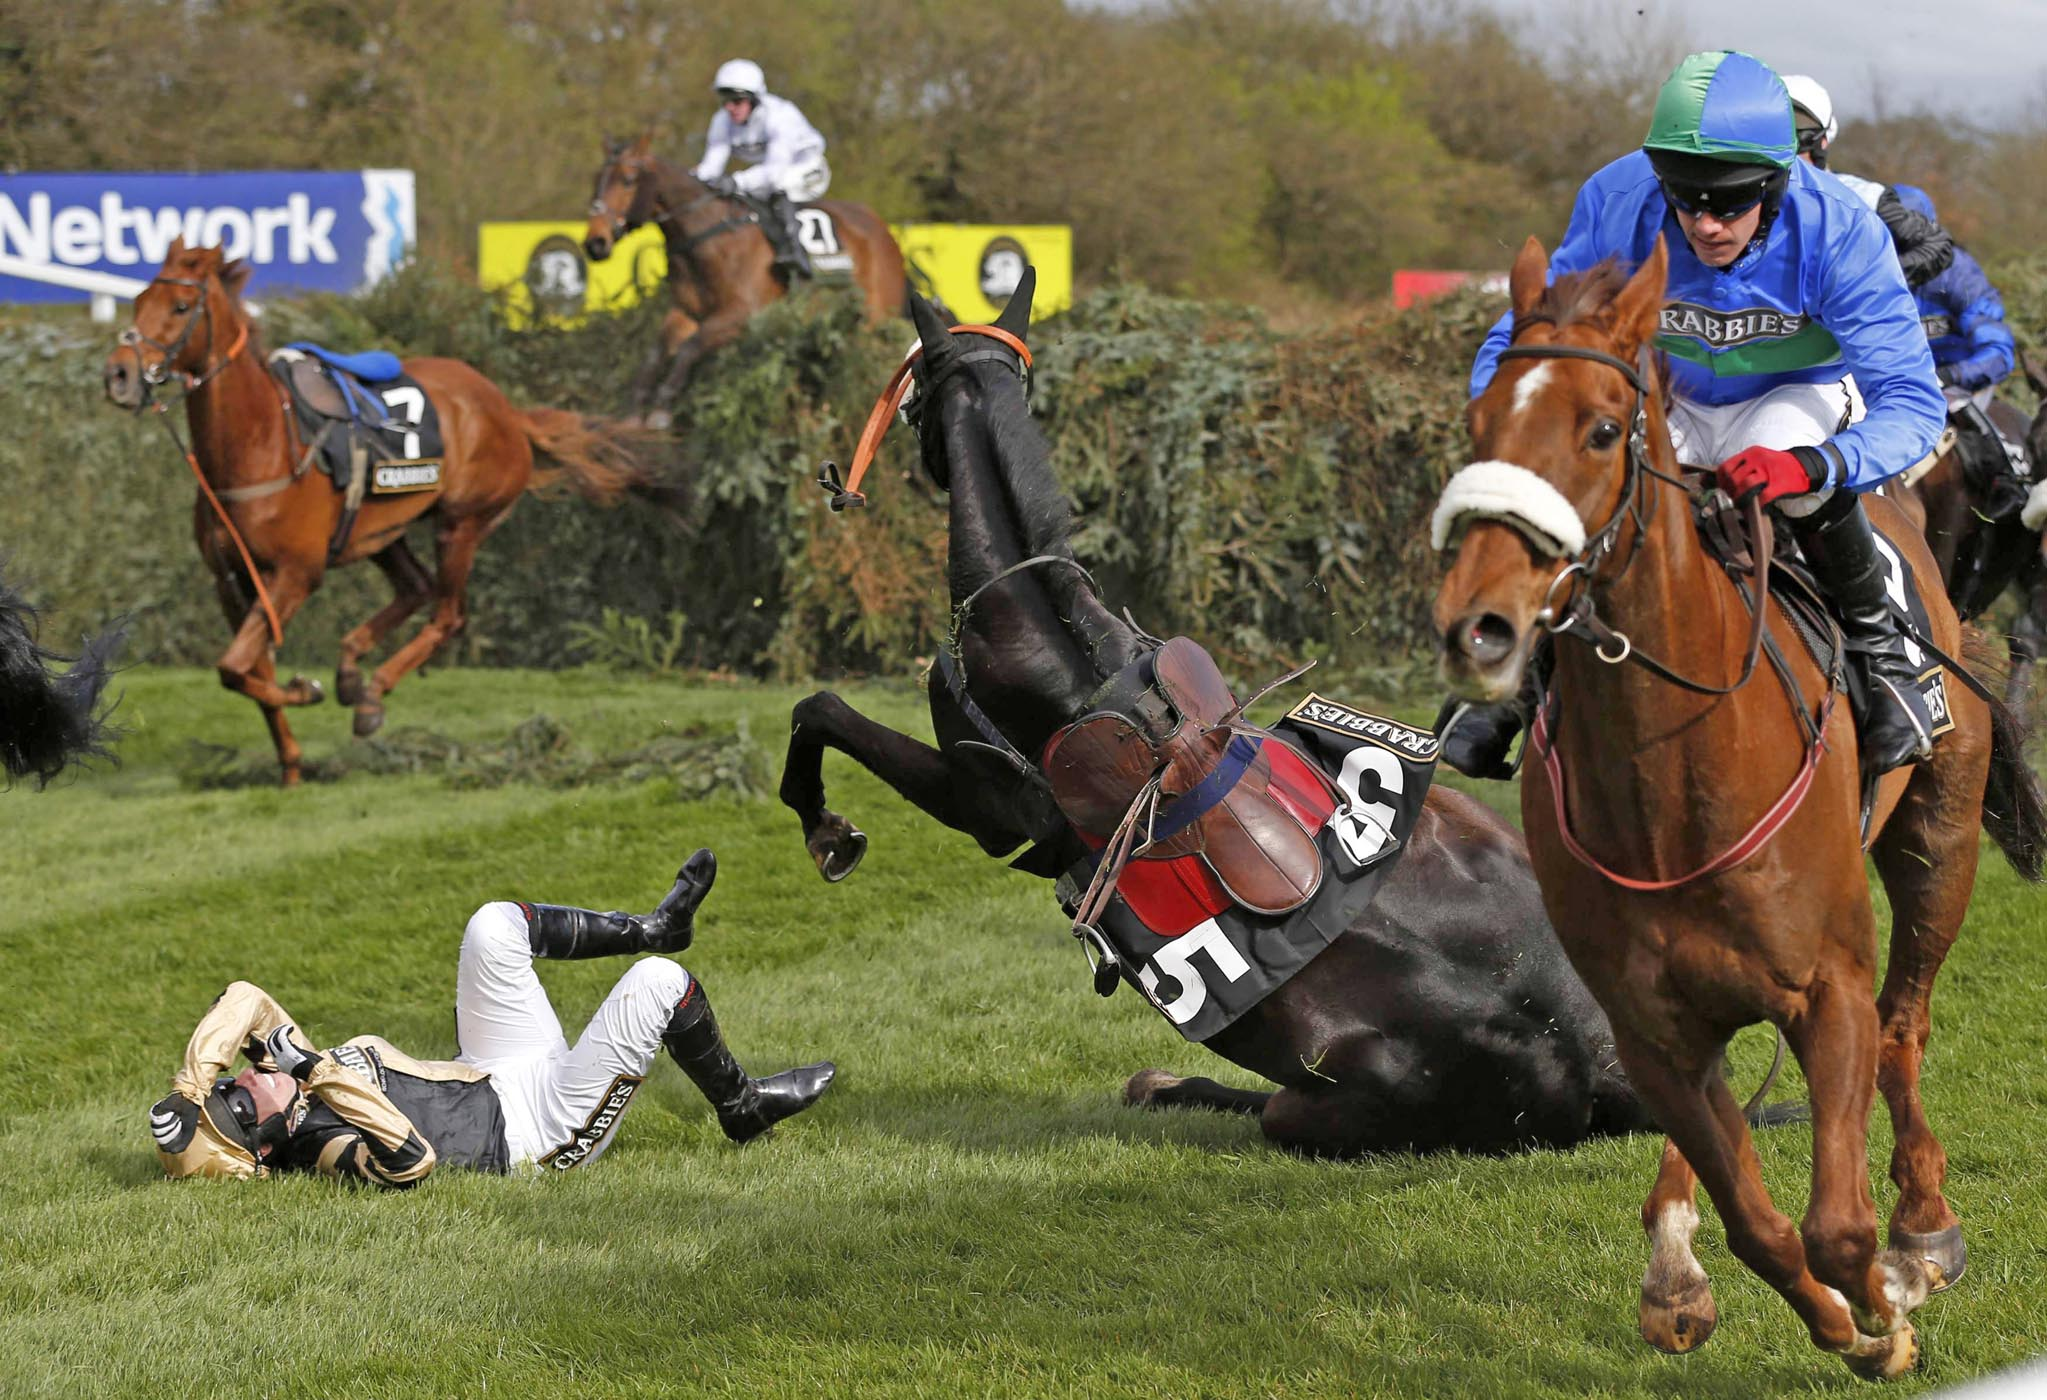 Fago, ridden by Barry Fehilly, falls at the open ditch on the way to winning the 'Supporting The Everton In The Community Steeple Chase' during the Grand National horse racing meeting at Aintree, northern England